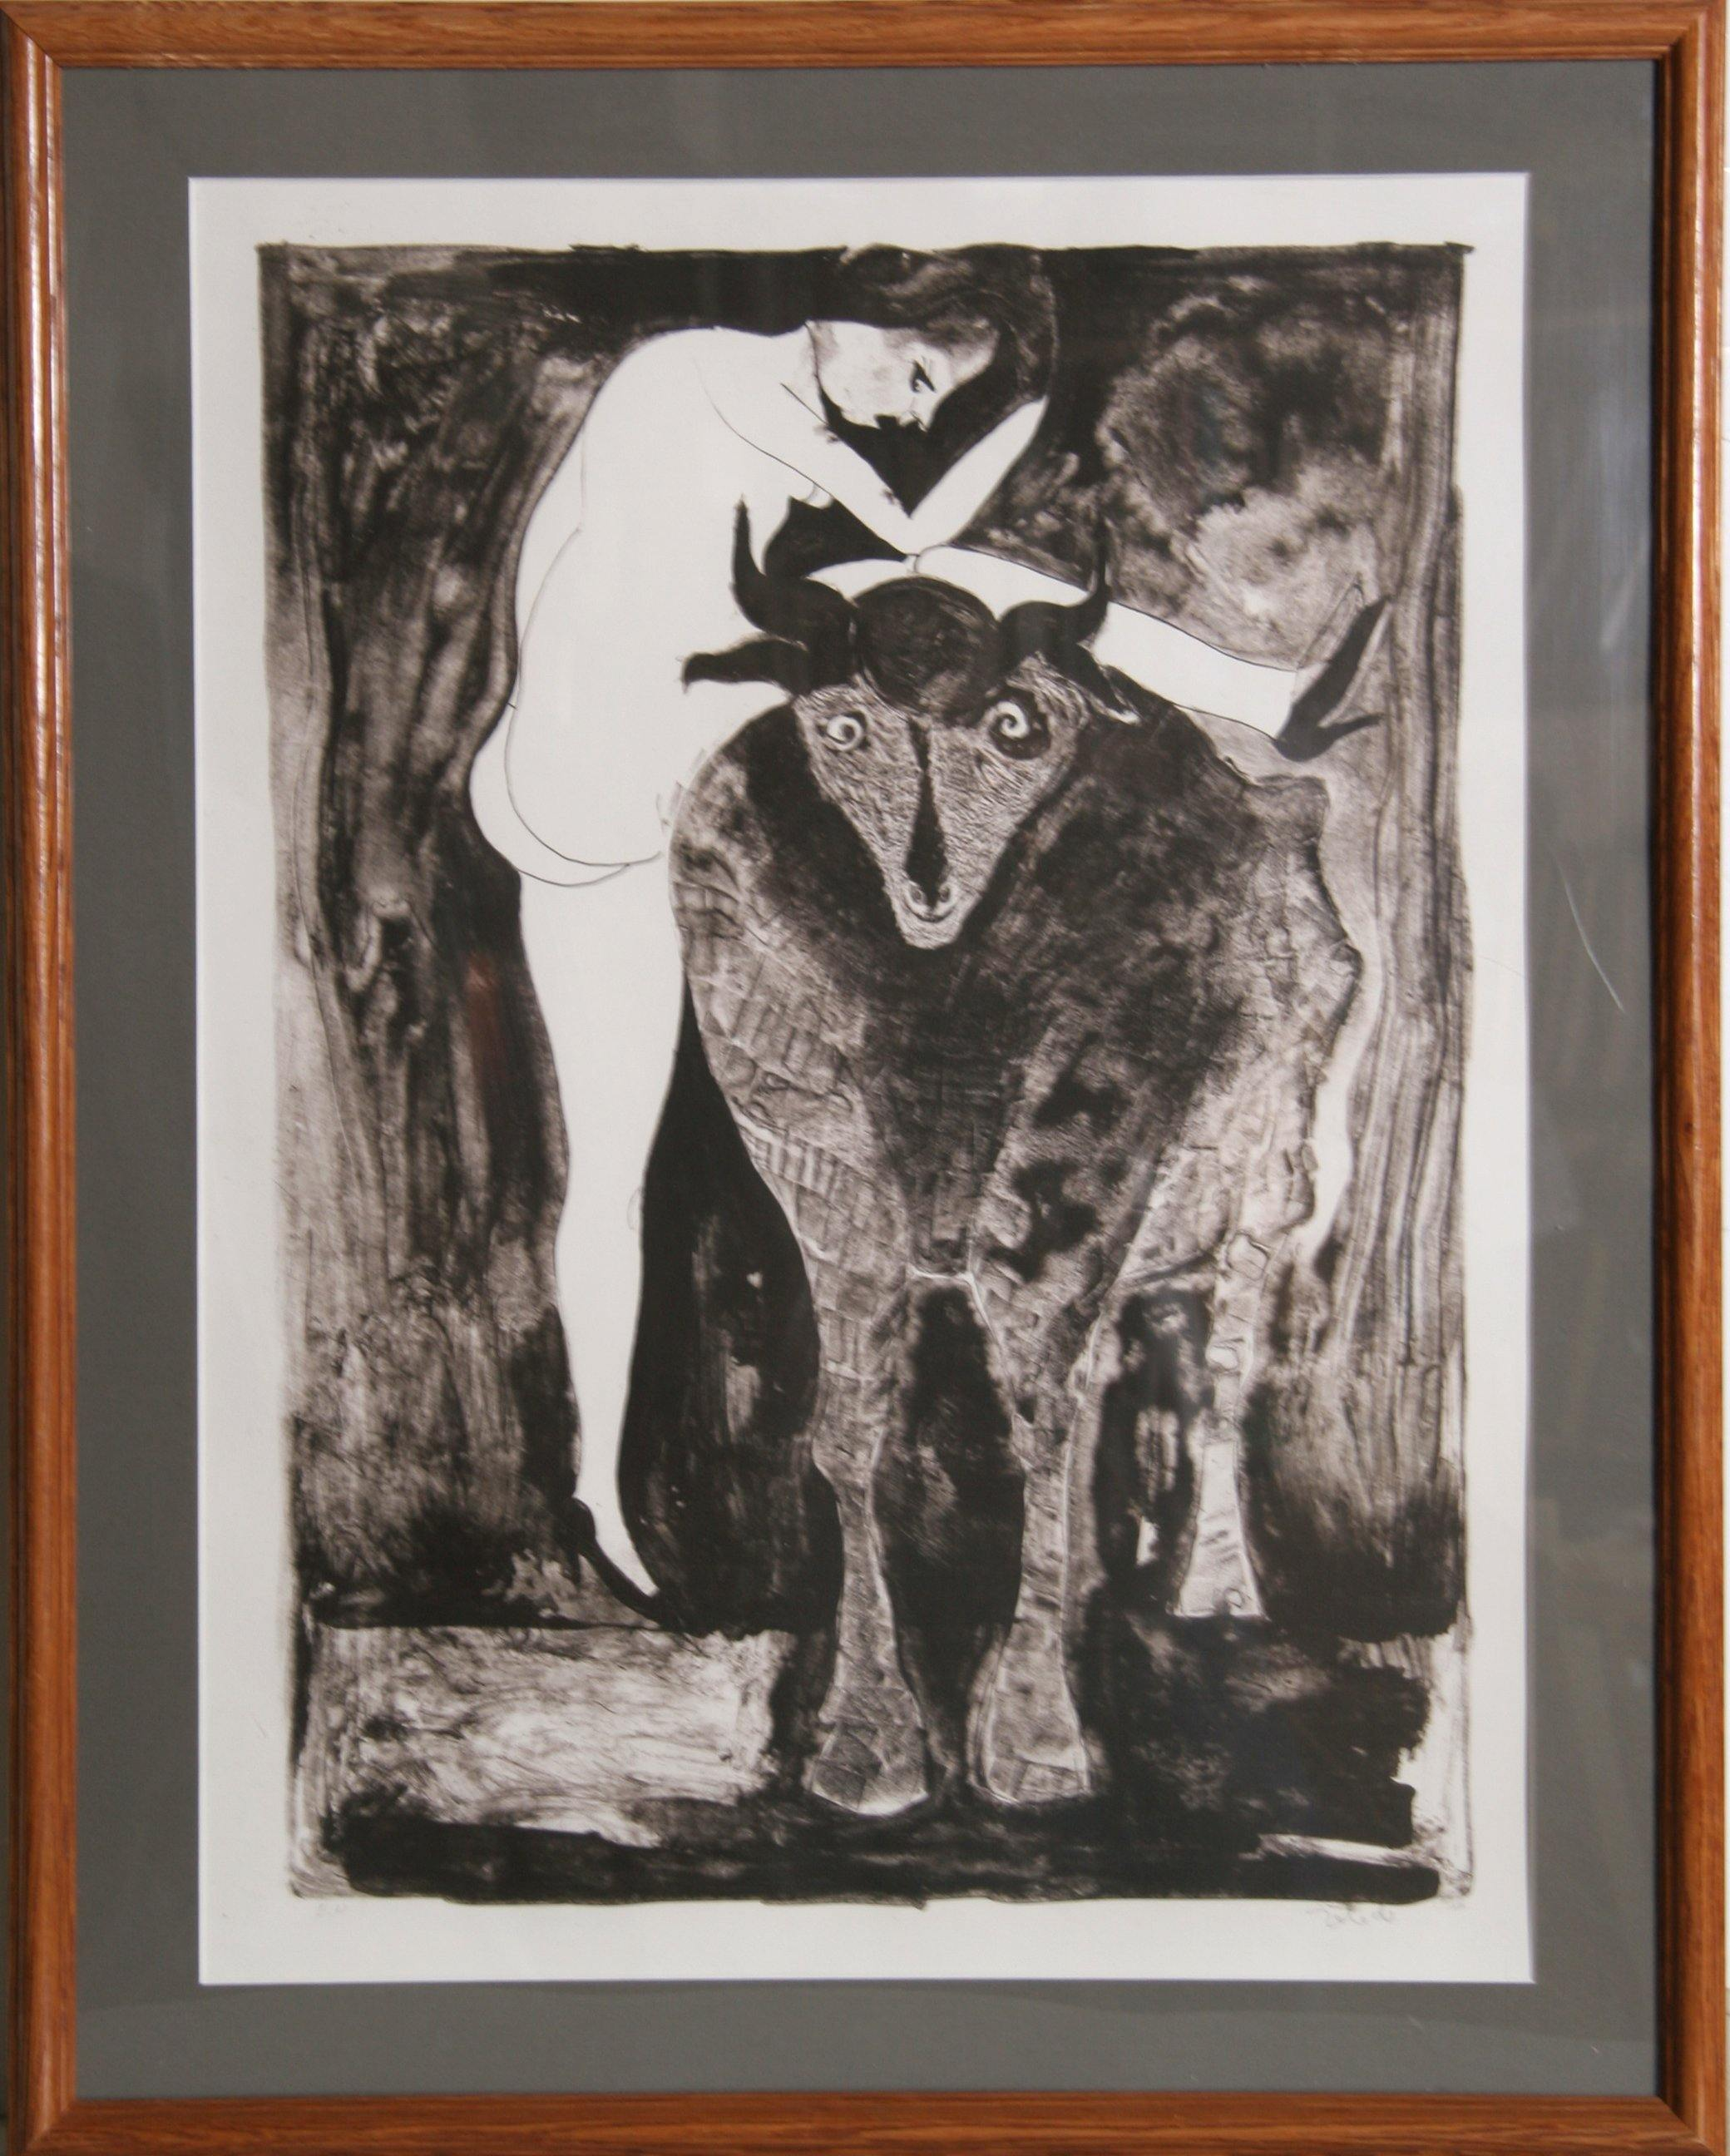 Francisco Toledo, Woman with Goat Lithograph - RoGallery